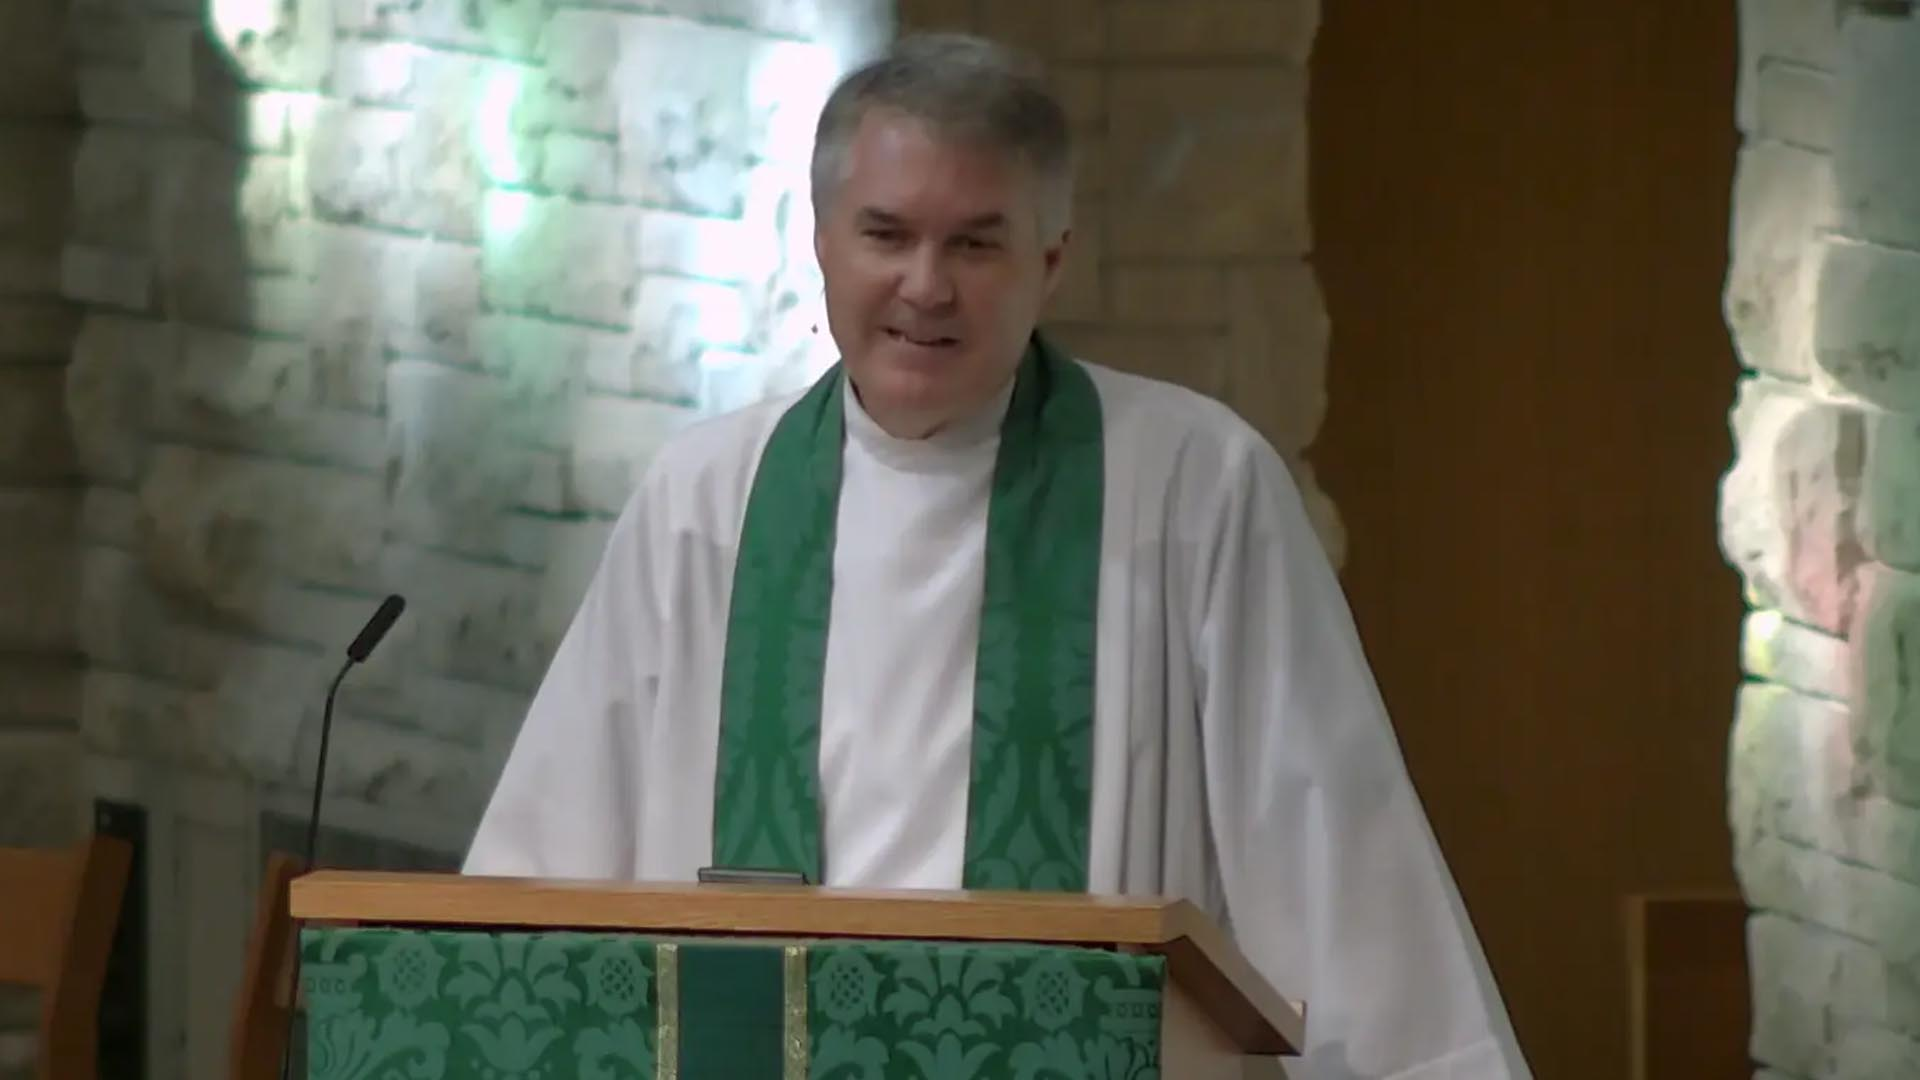 Join the Spiritual Battle - Sermon by Charlie Holt